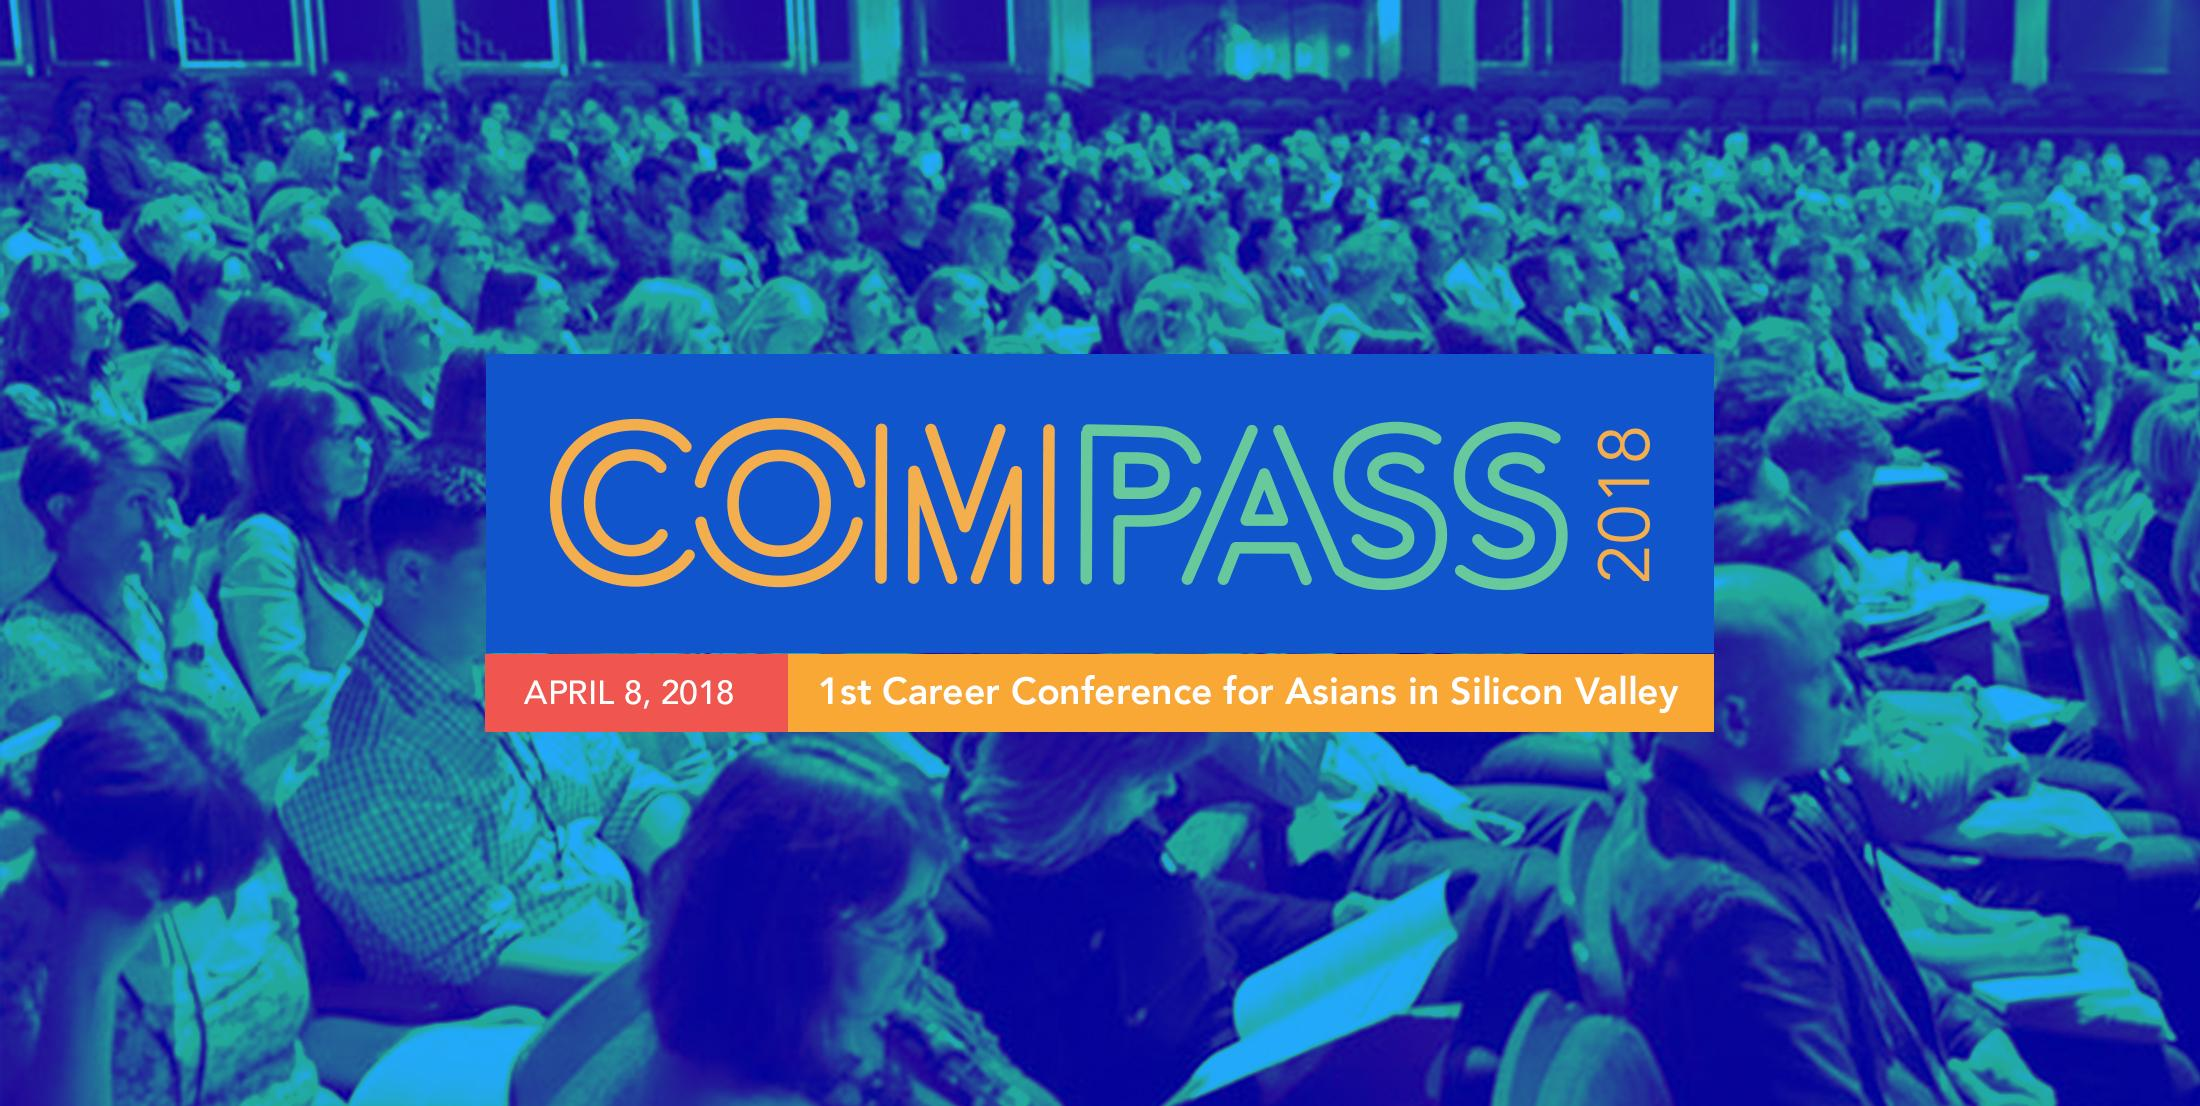 COMPASS 2018: 1st Career Conference for Asian